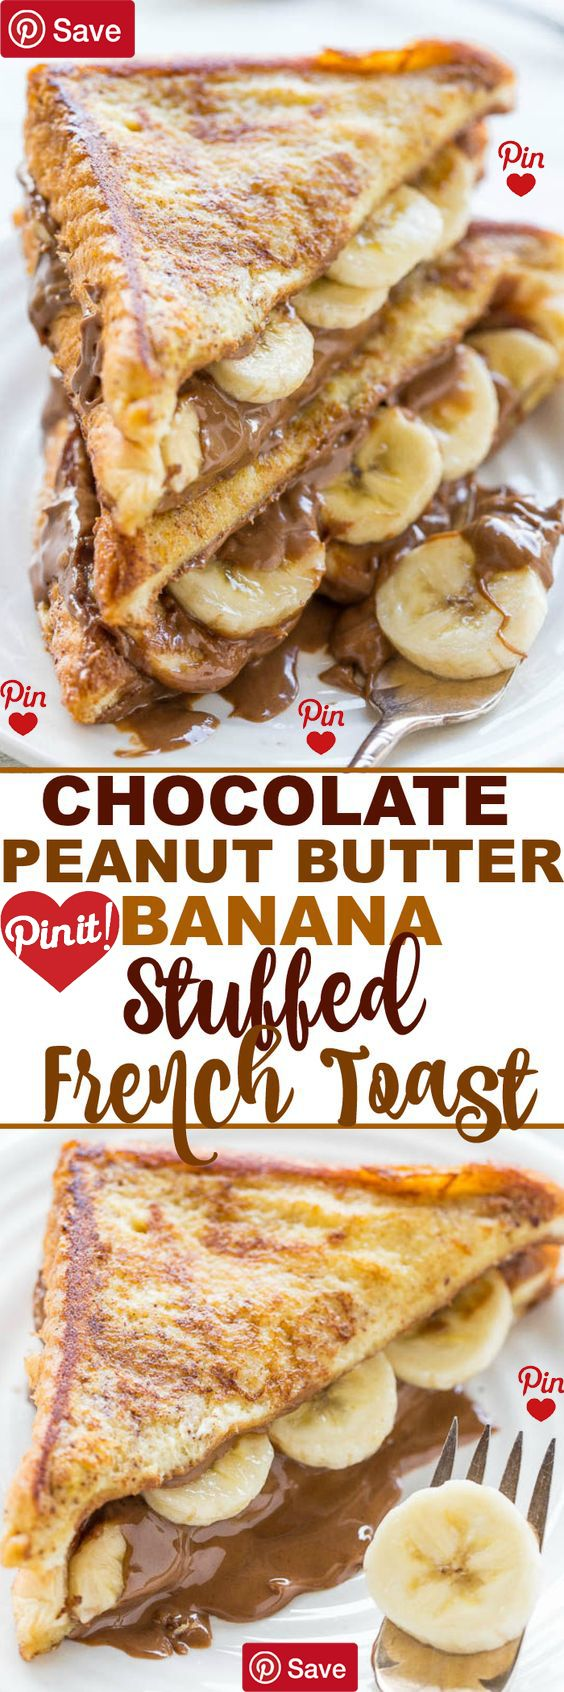 Peanut butter and bananas is such a classic combination that always tastes good. I used to eat peanut butter and banana sandwiches as a kid  Ingredients  Vegetarian  Produce  1 Banana medium  Refrigerated  2 Eggs large  Condiments  8 tbsp Chocolate peanut butter  Baking & Spices   tsp Cinnamon  1 tbsp Granulated sugar  Bread & Baked Goods  4 slices Texas toast  Dairy  1 About 2 tablesoons unsalted butter   cup Milk #delicious #diy #Easy #food #love #recipe #recipes #tutorial #yummy @mabarto…